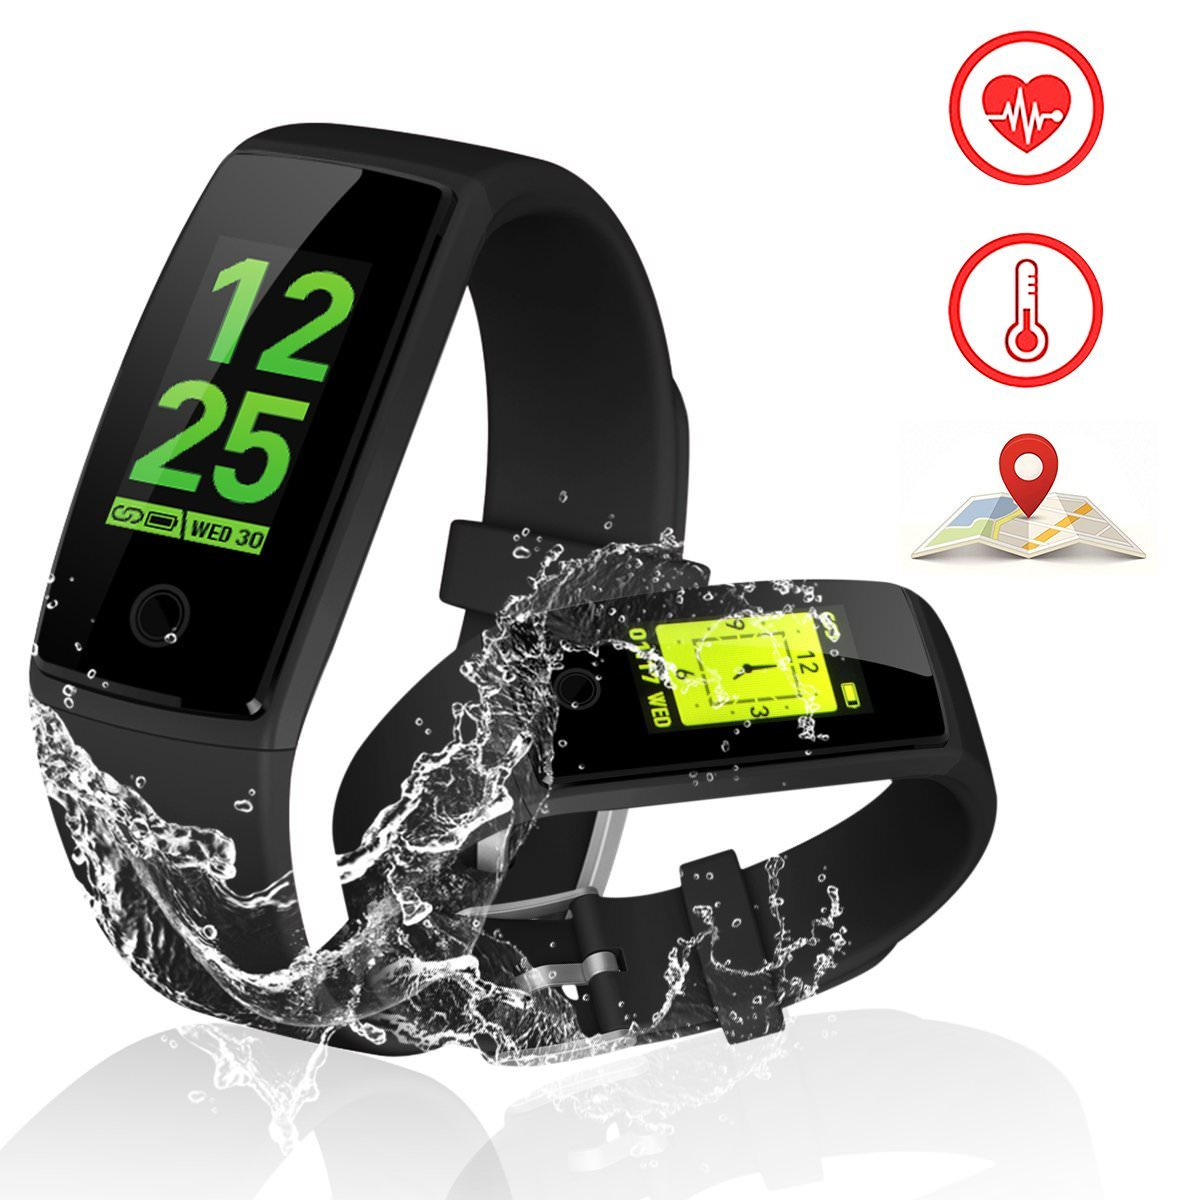 Fitness Tracker Watch With Heart Rate Monitor, Activity Tracker Smart Band With Blood Pressure,Colorful Screen,Step Counter,Sleep Monitor,GPS Waterproof Tracker For Women Men Children